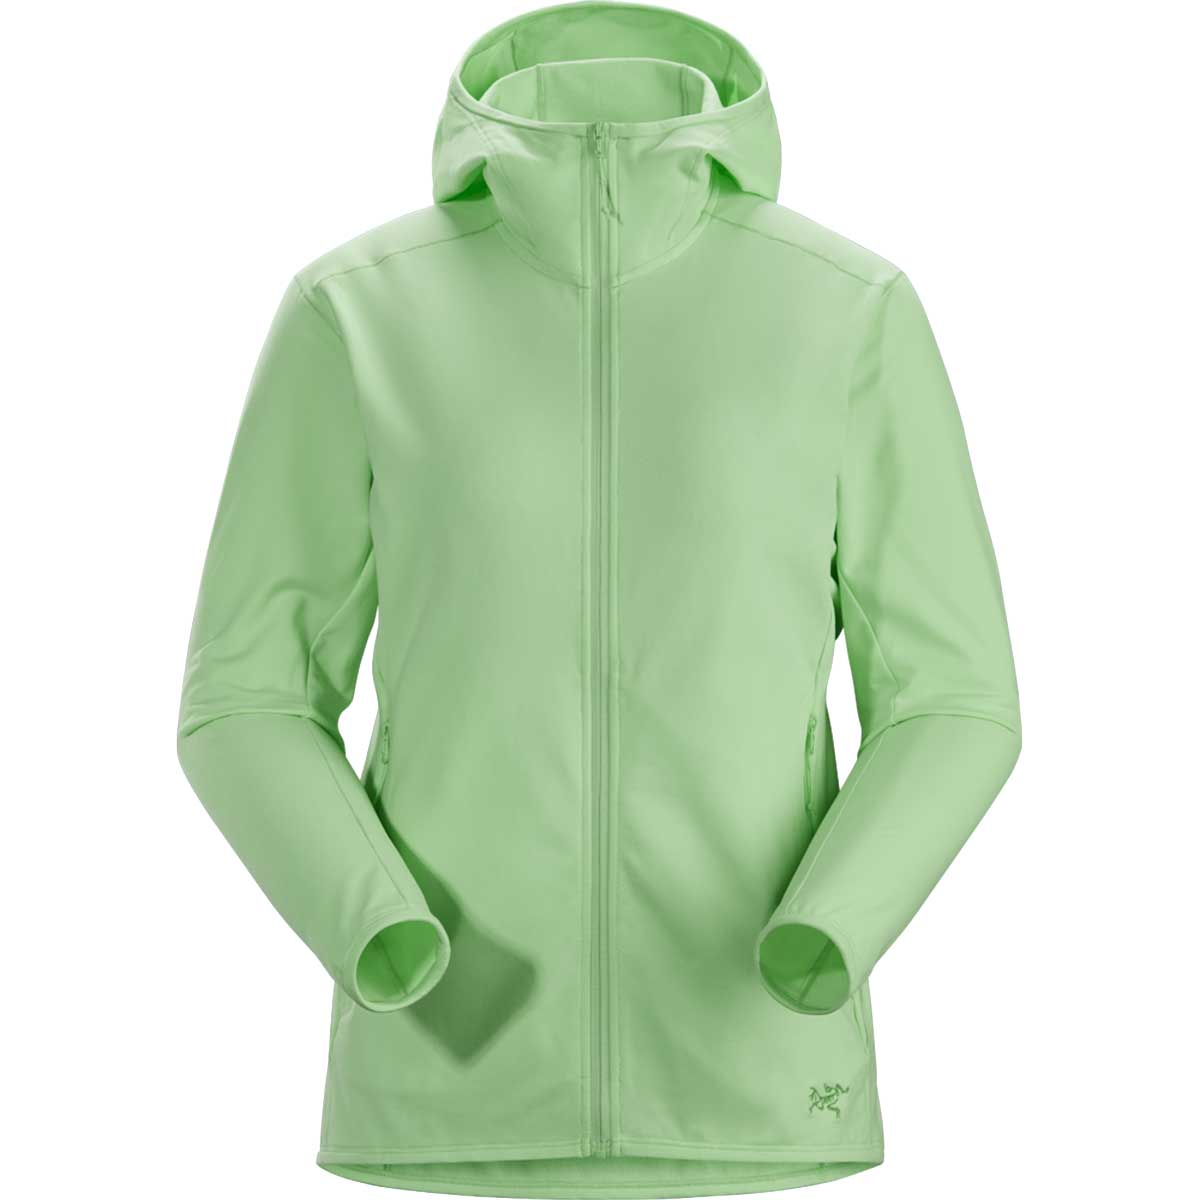 Arcteryx women's Kyanite LT Hoody in Bioprism front view